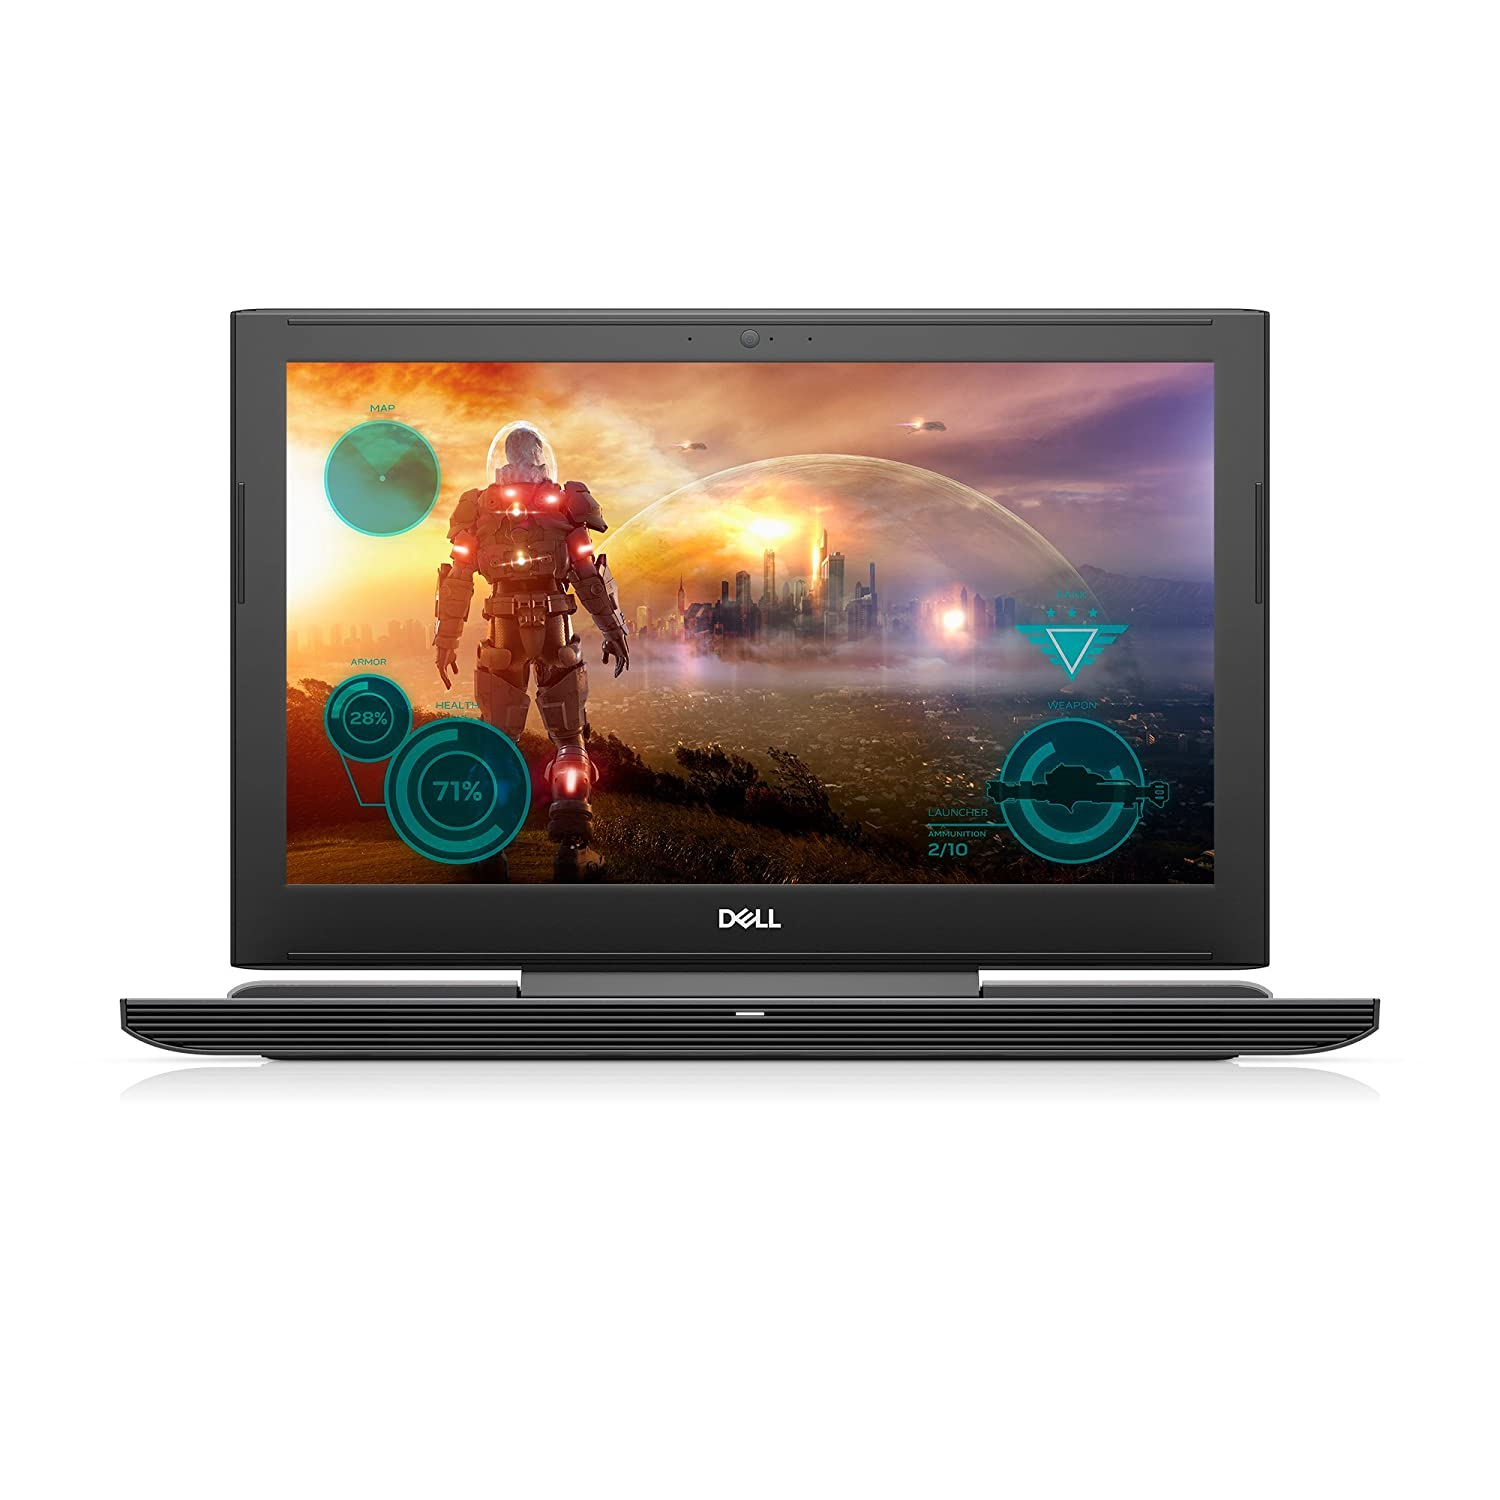 Dell i7577-5241BLK-PUS Inspiron LED Display Gaming Laptop – 7th Gen Intel Core i5, GTX 1060 6GB Graphics, 8GB Memory, 128GB SSD 1TB HDD, 15.6in, Matte Black Renewed